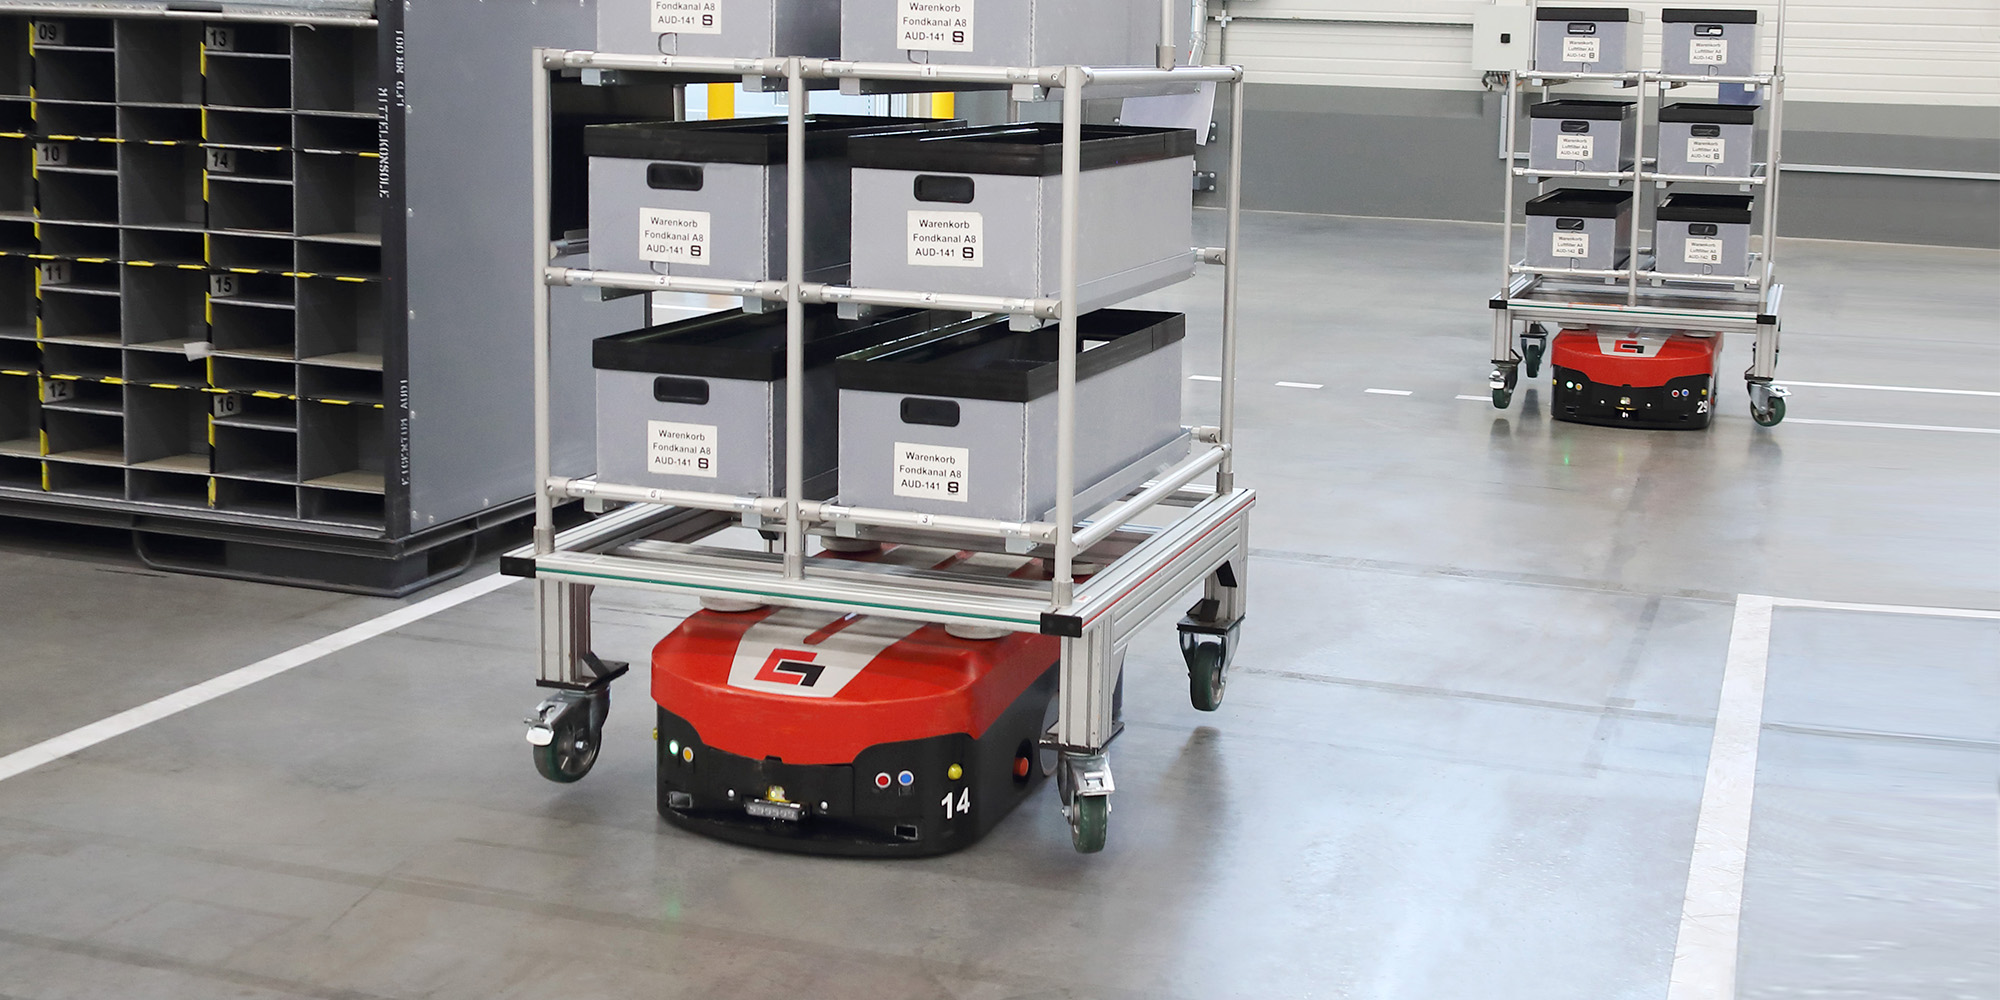 Automated guided vehicles goods carrier